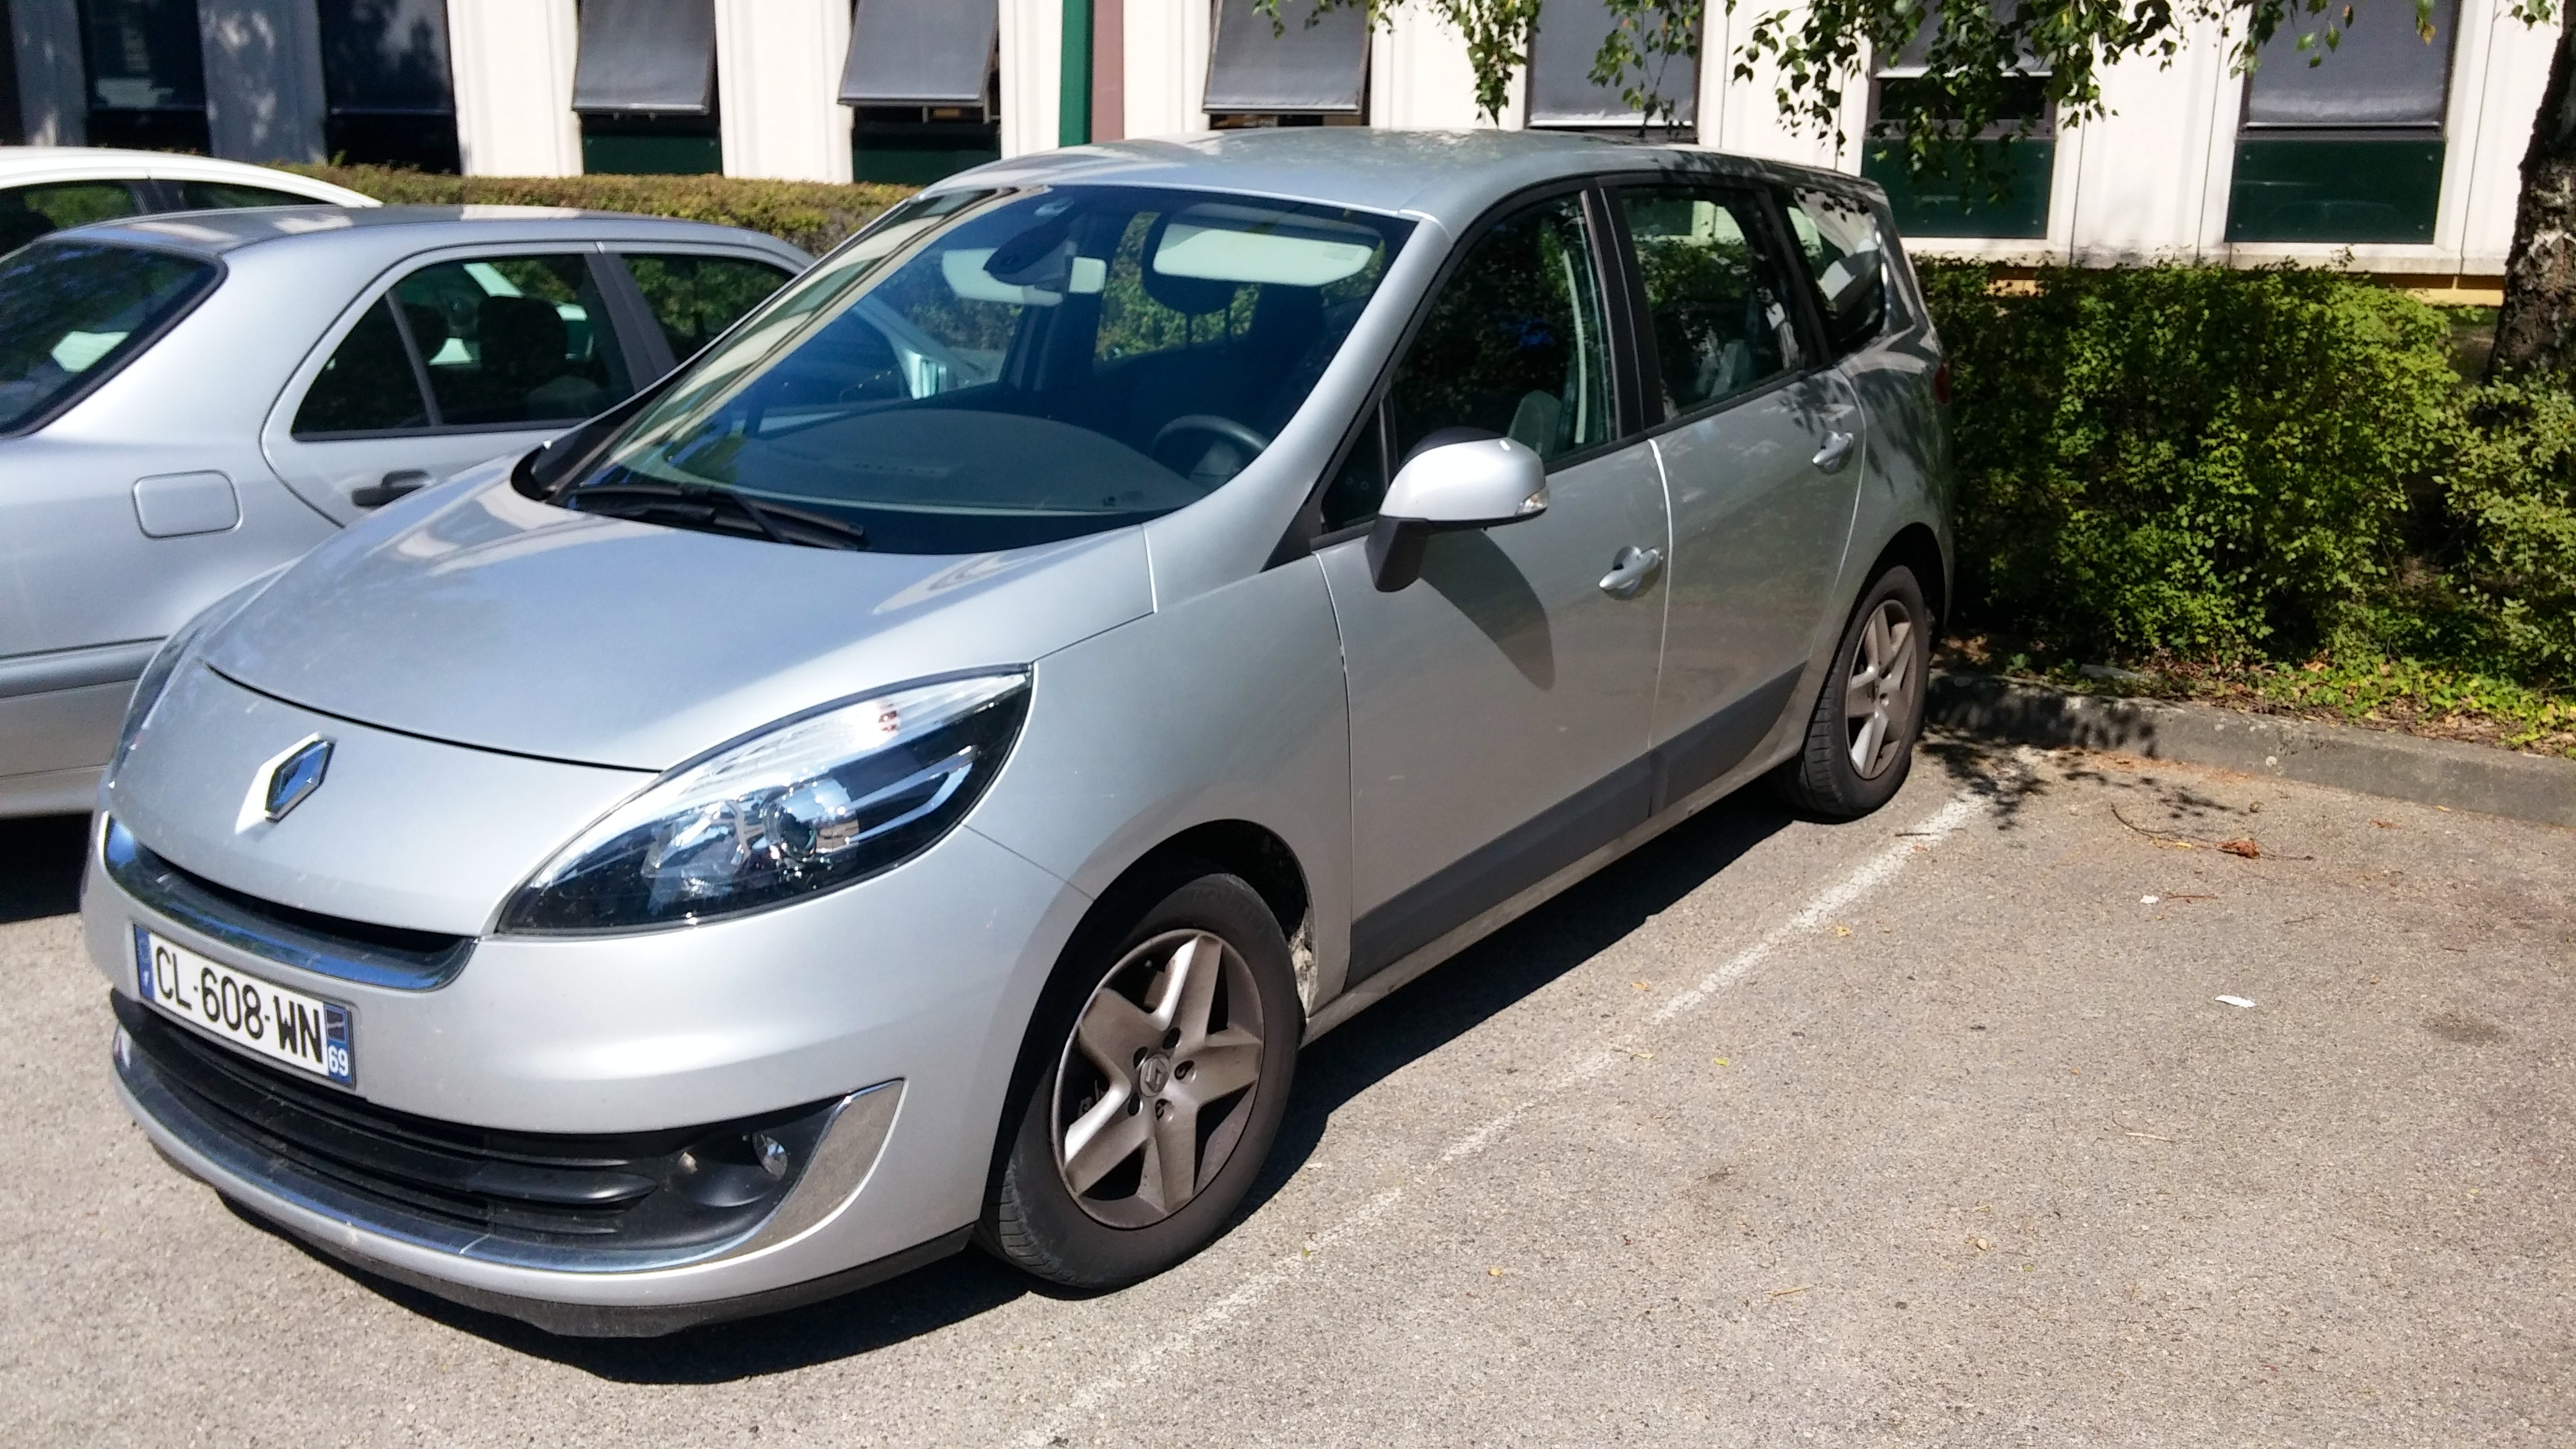 Renault Grand Scenic 3 - 7 places, 2013, Diesel, 7 places